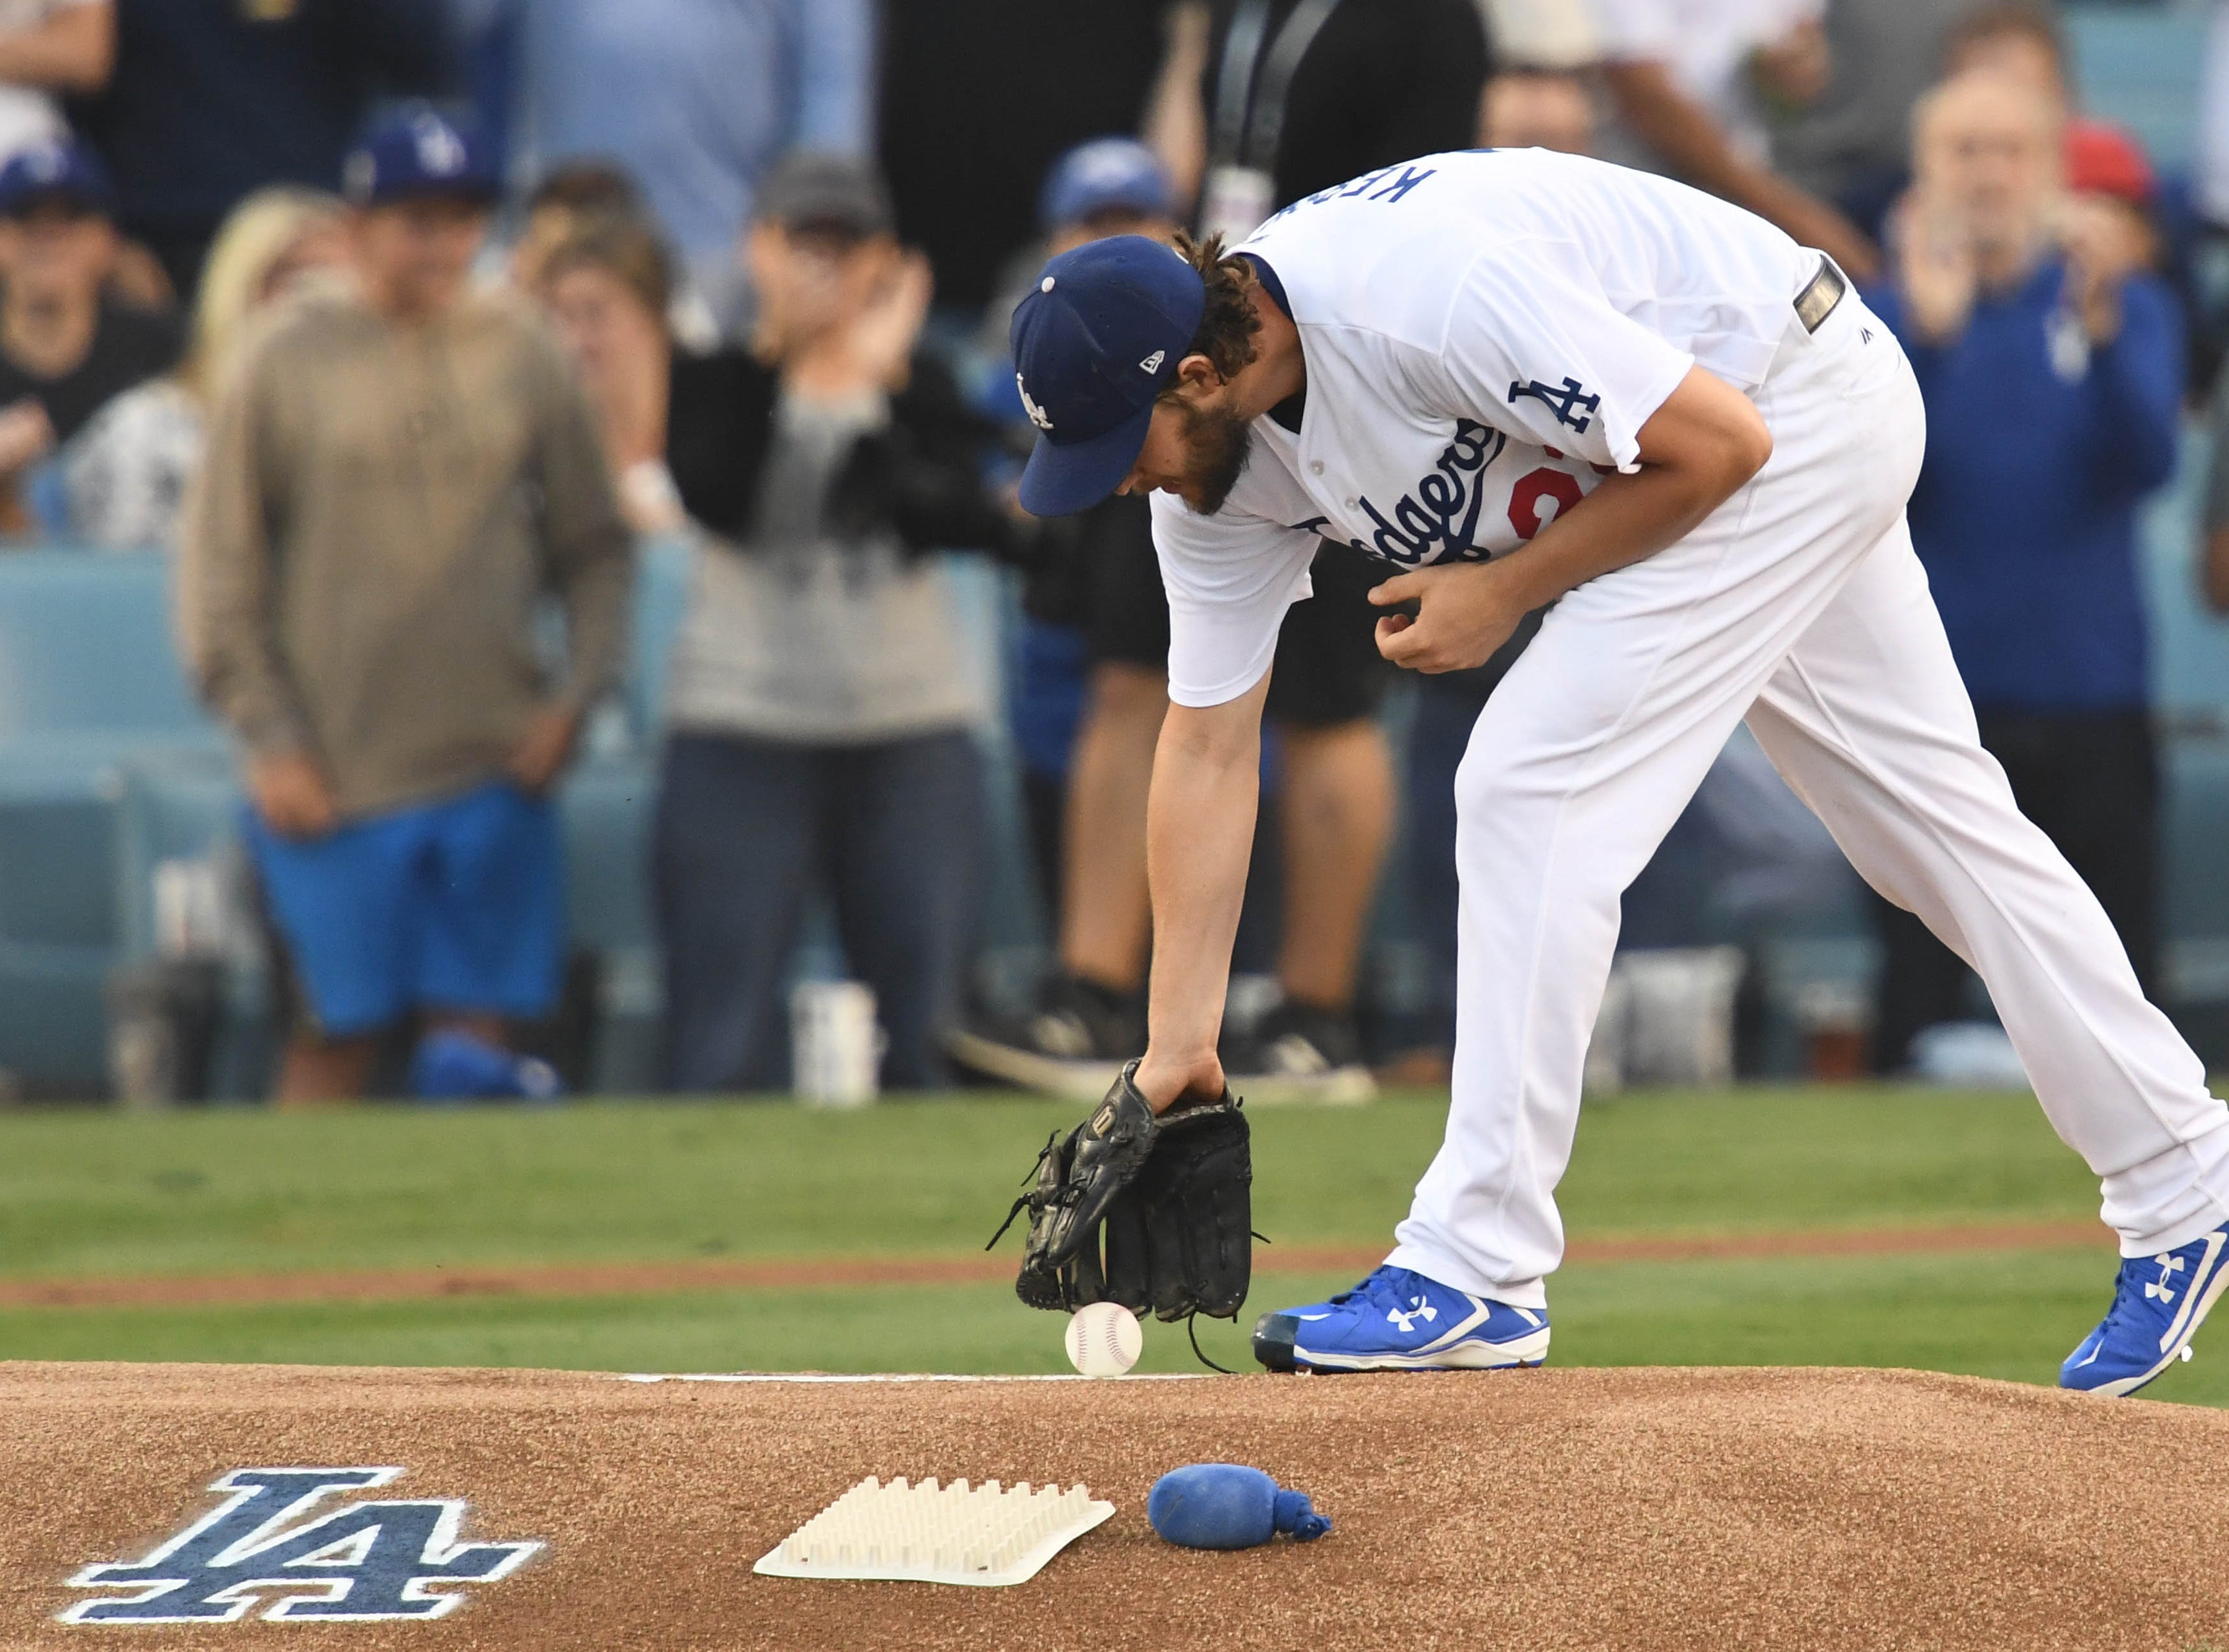 Game 5 at Dodger Stadium: Clayton Kershaw picks the ball up off the mound in the first inning.